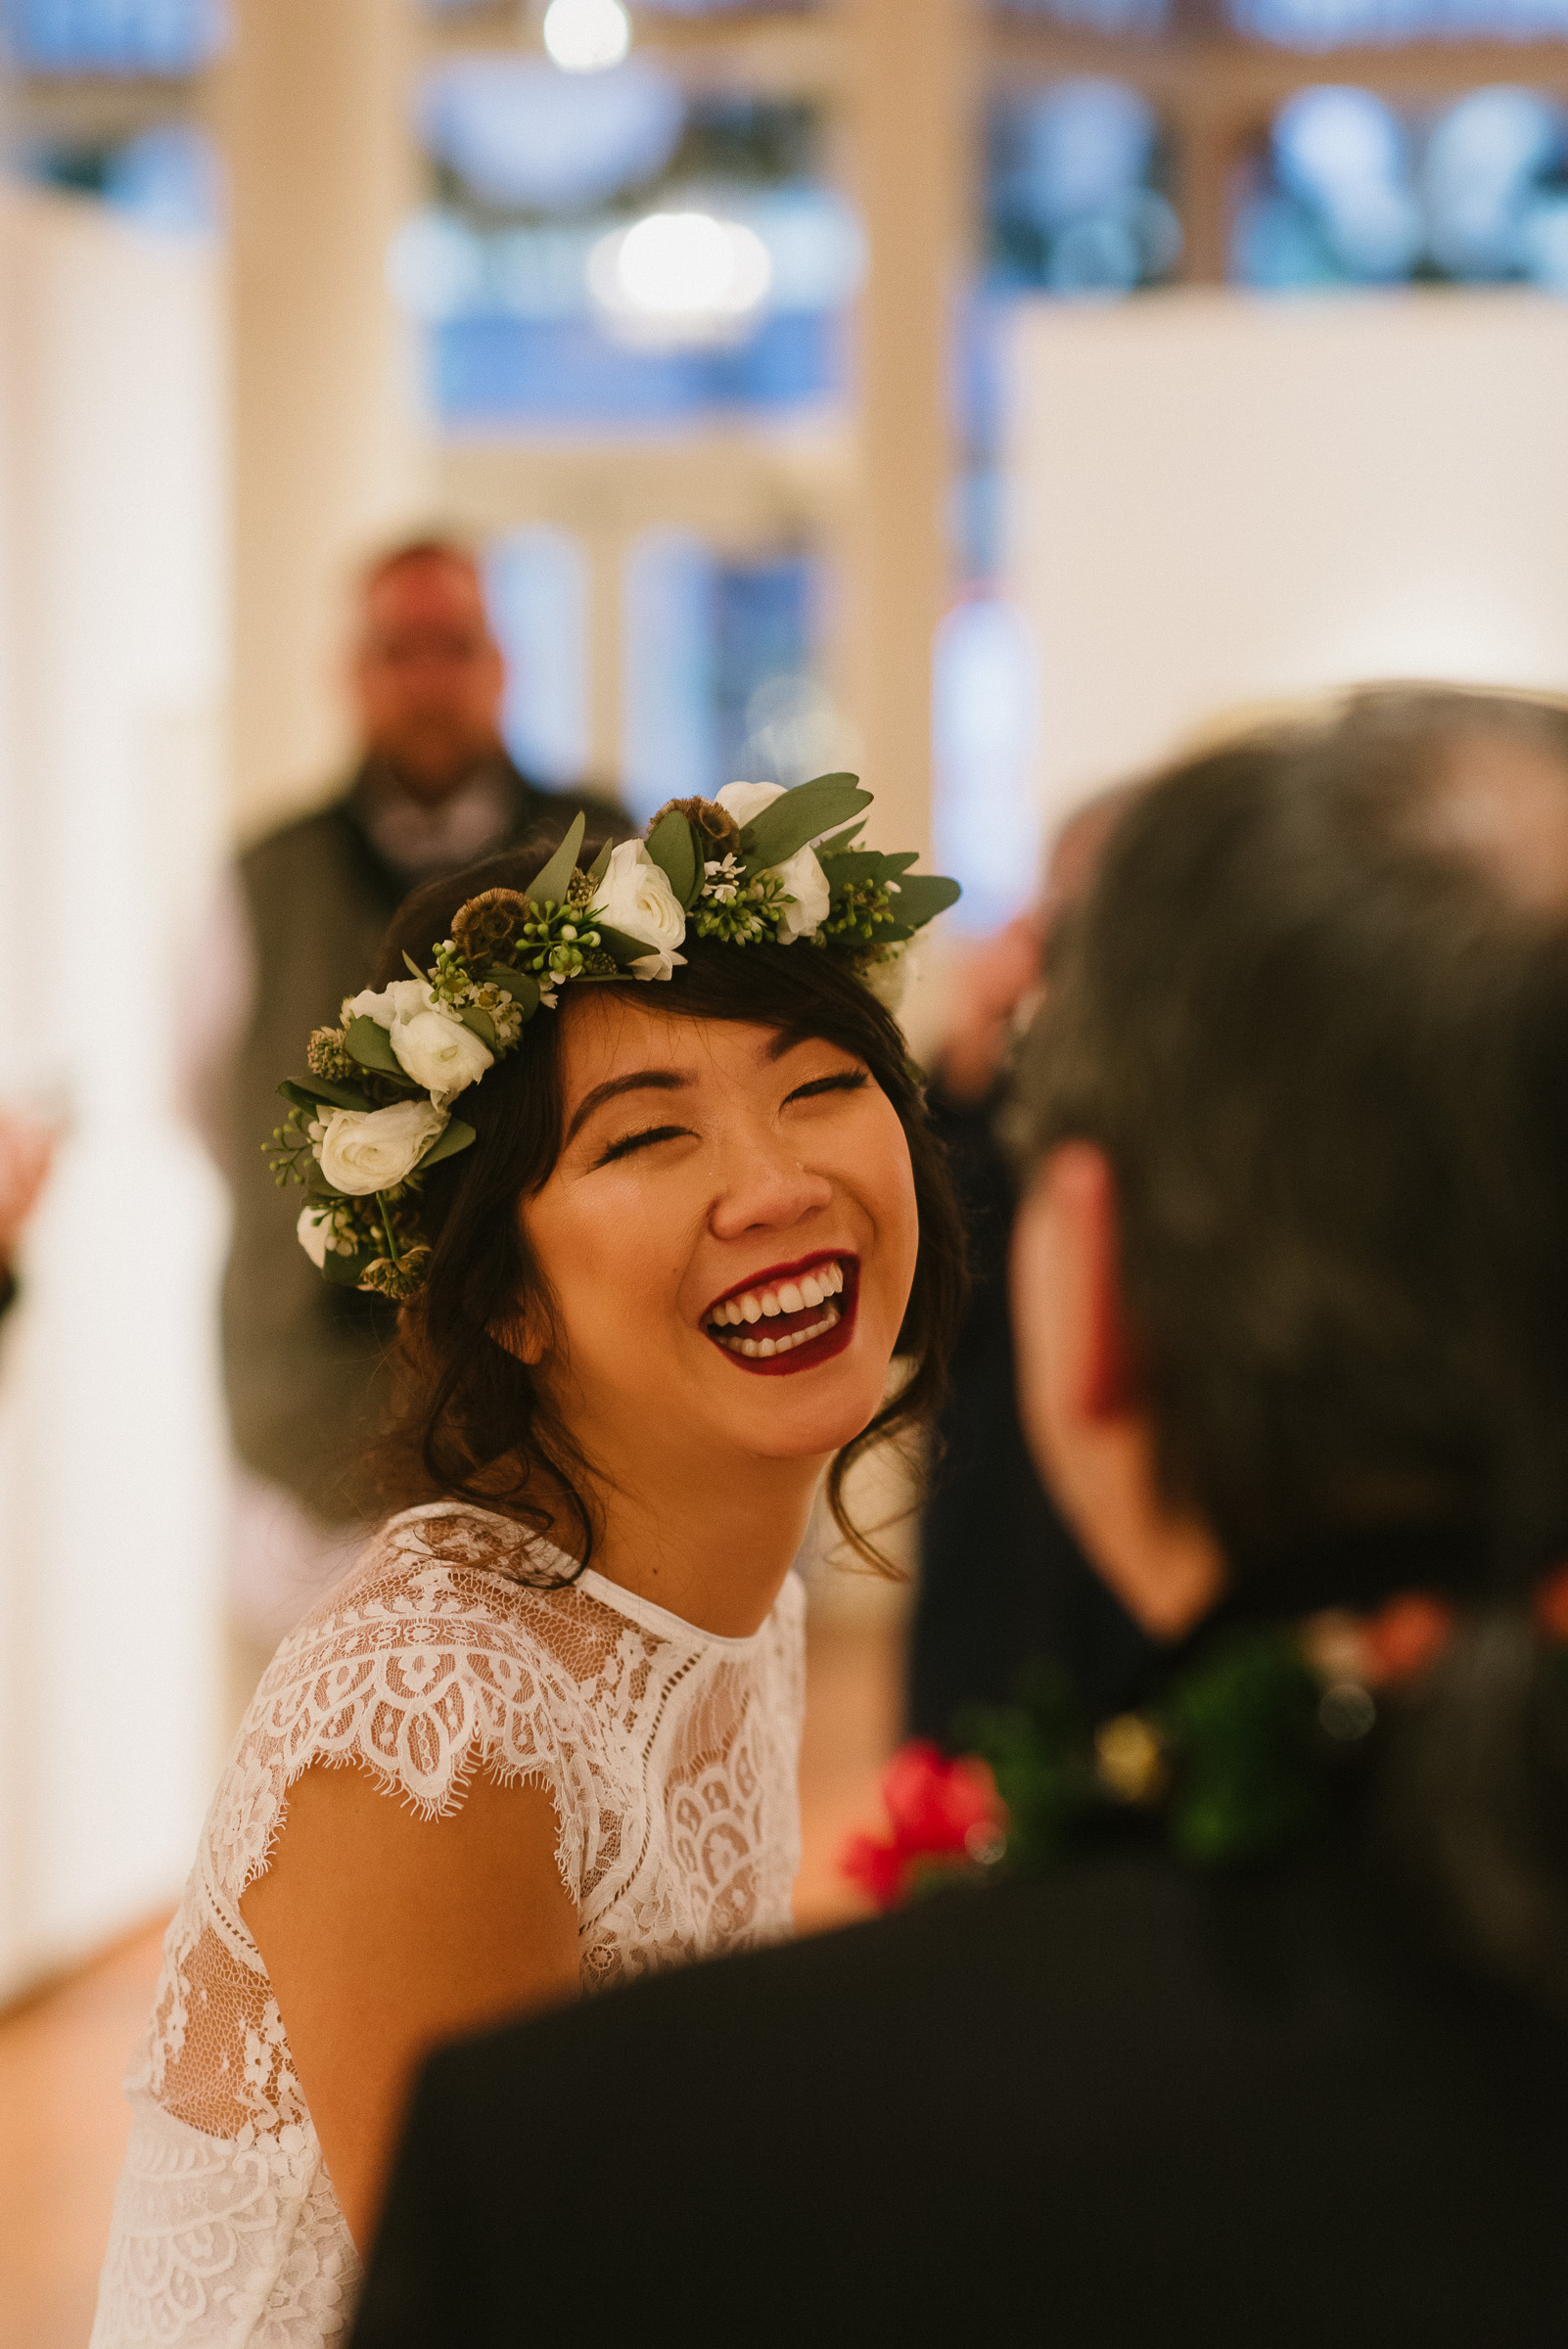 Bride Laughter during Wedding Ceremony in Pioneer Square